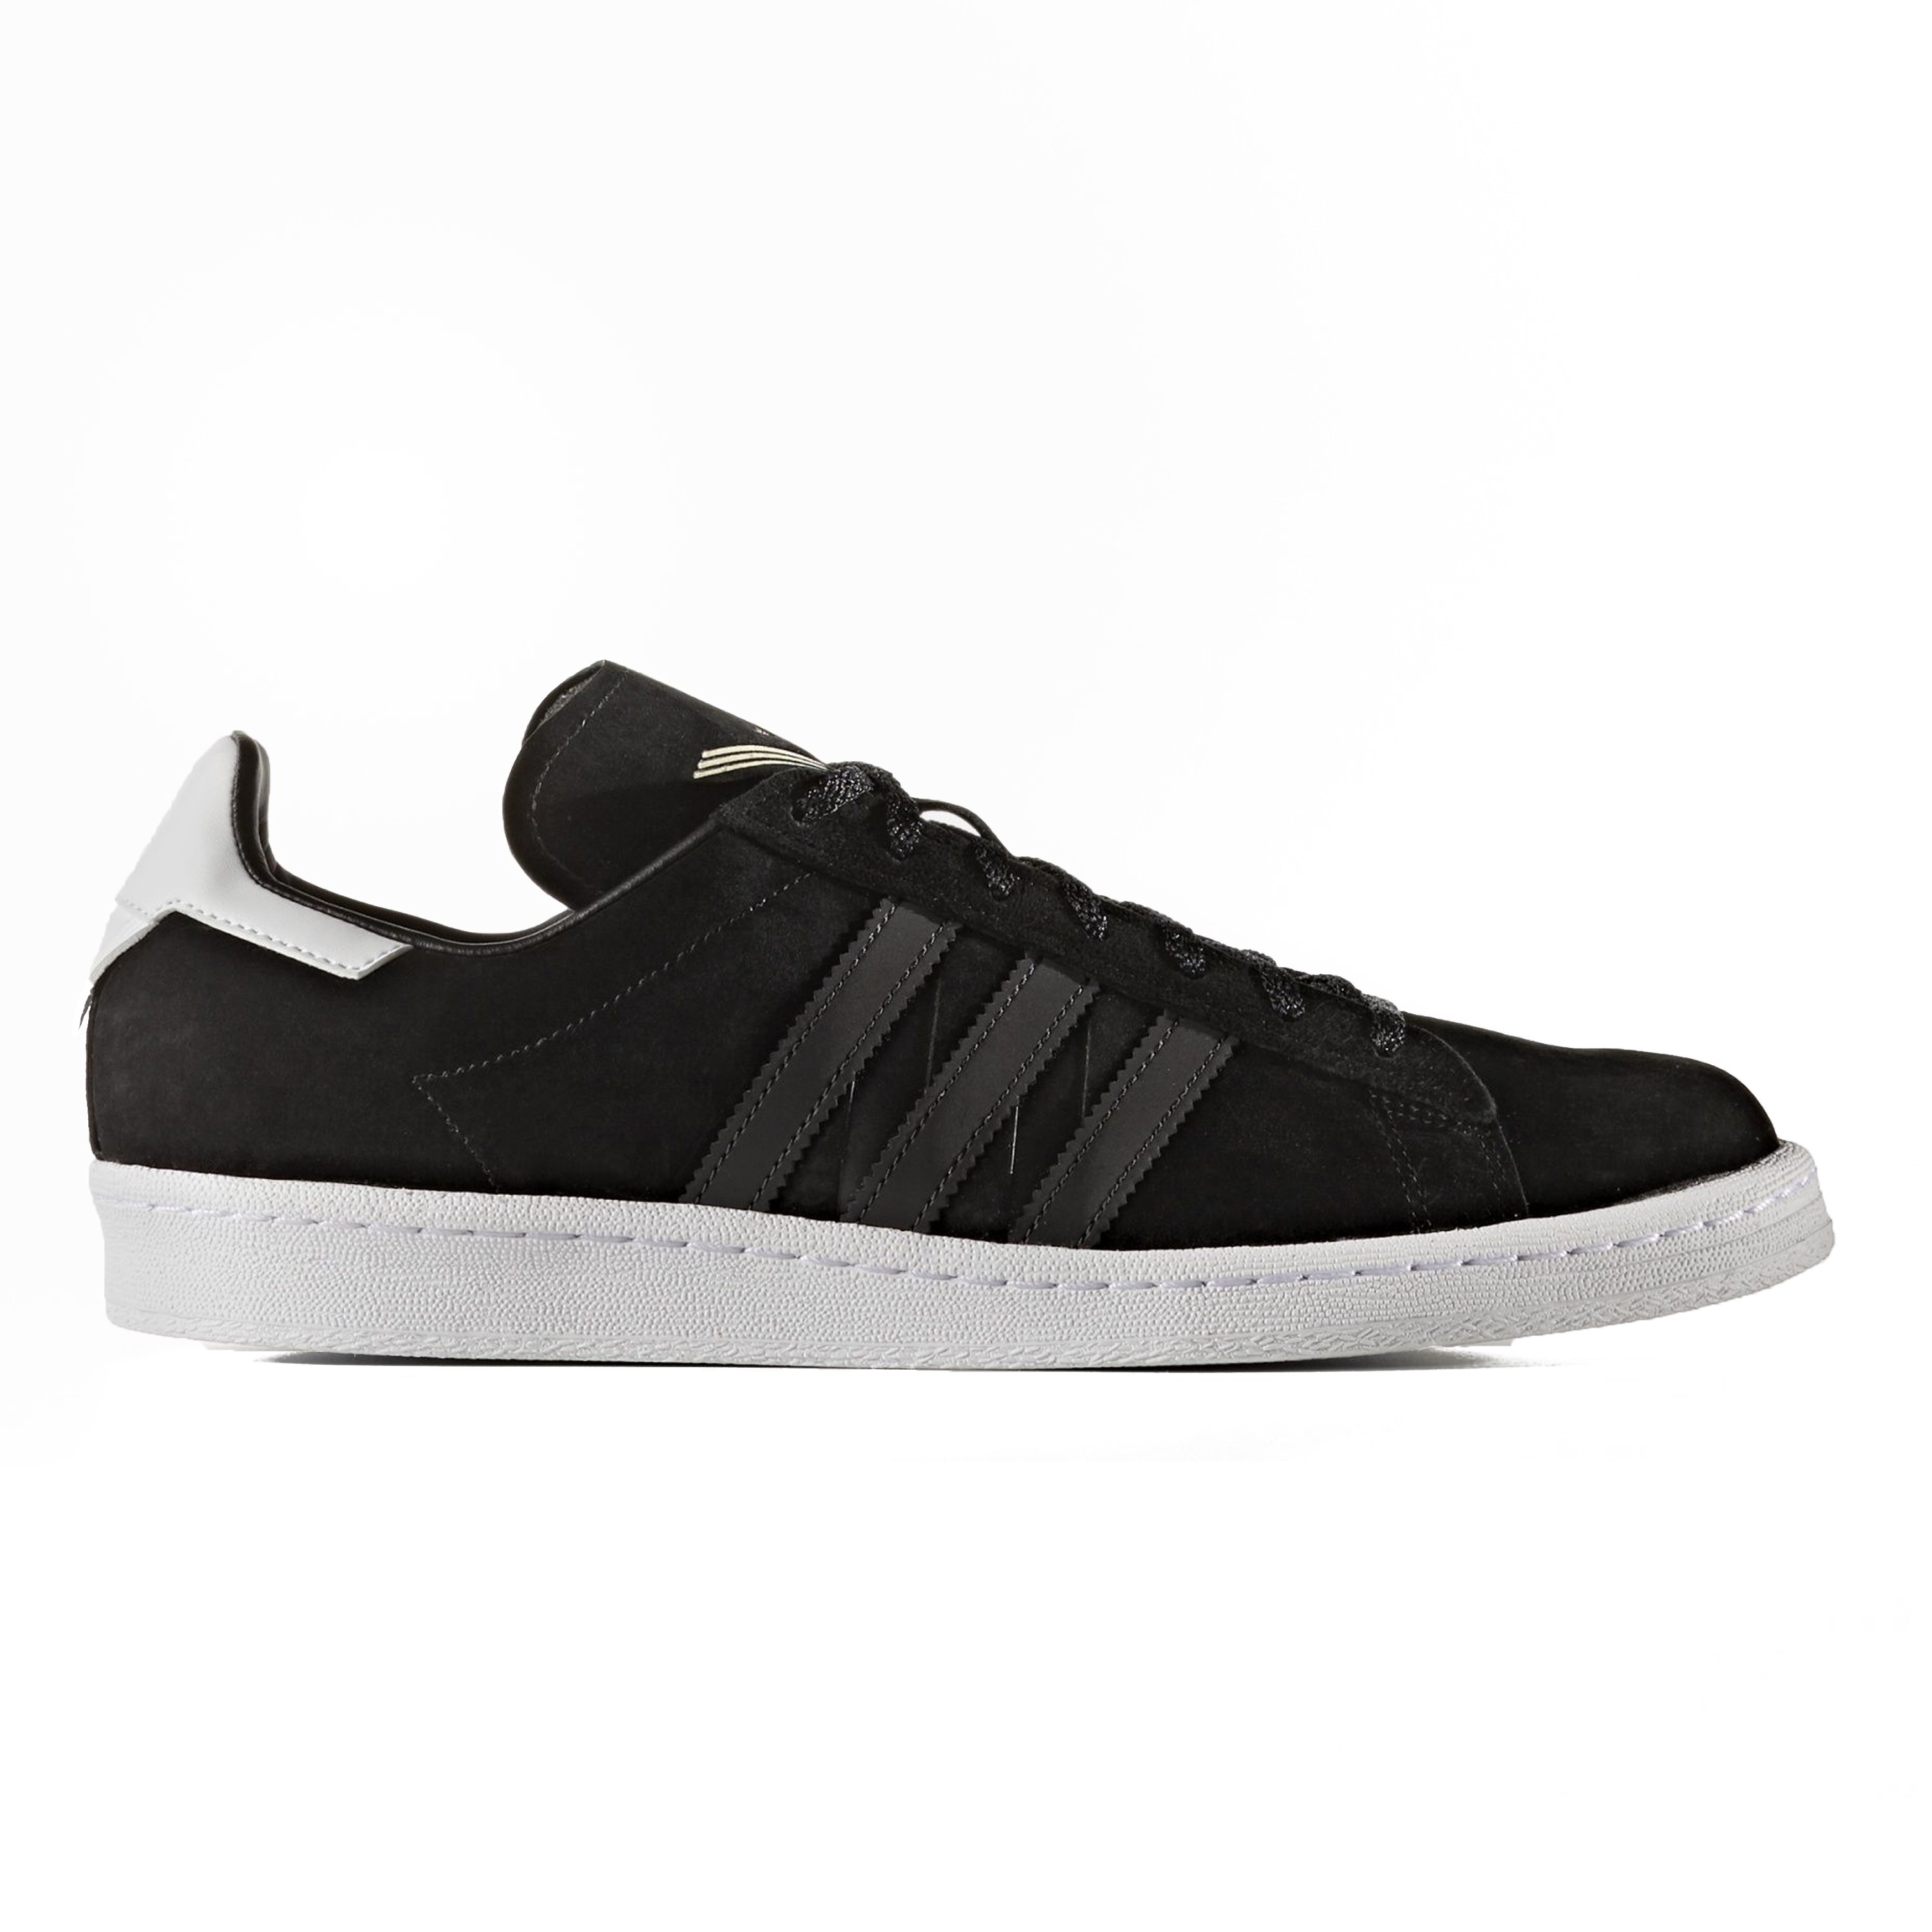 wholesale dealer 38dd2 00aa5 adidas Originals x White Mountaineering Campus 80s